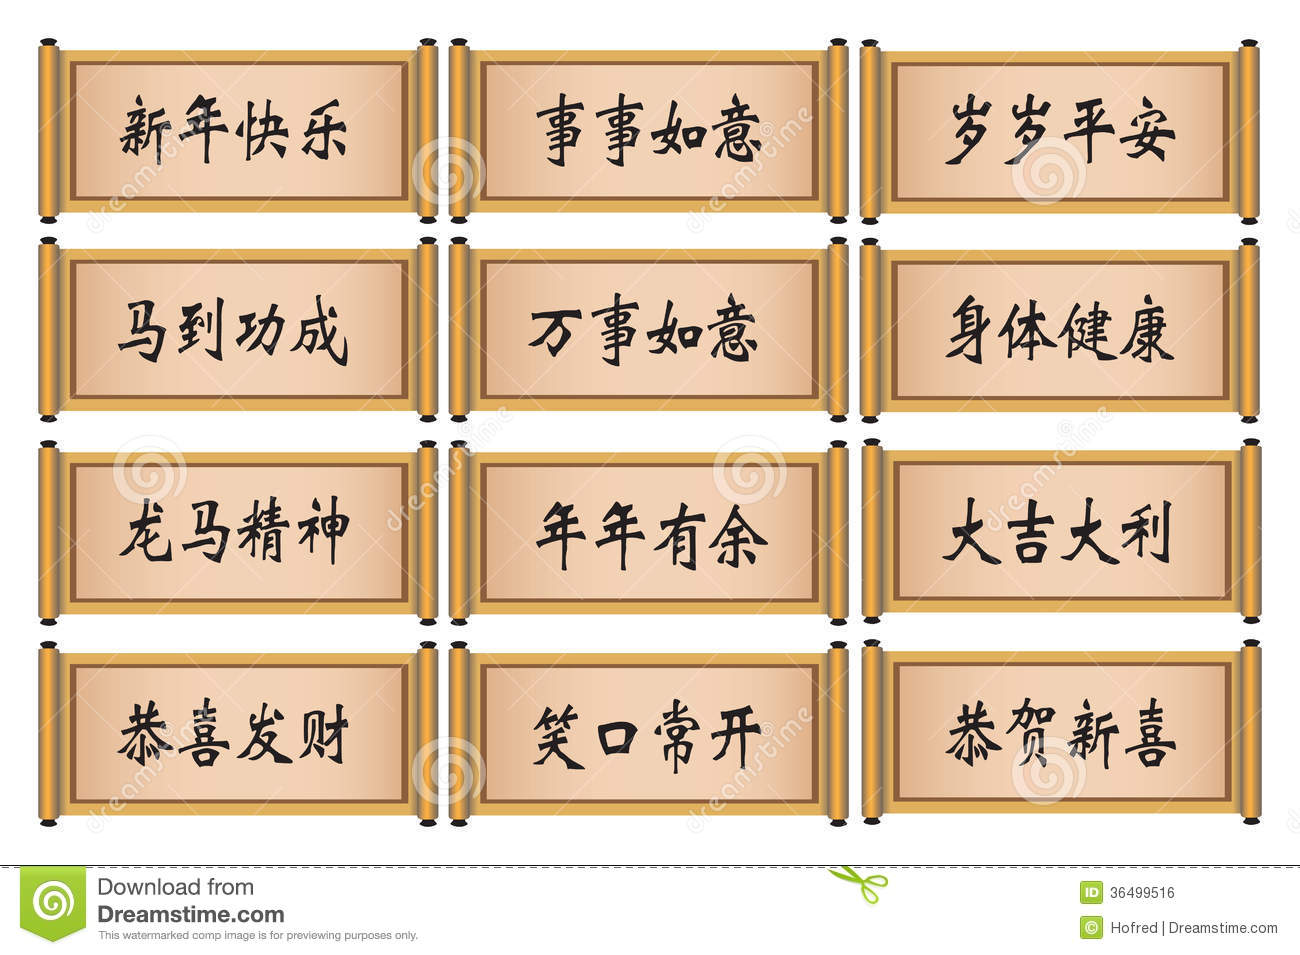 Chinese Calendar Illustration : Different chinese greeting calligraphy for lunar new year